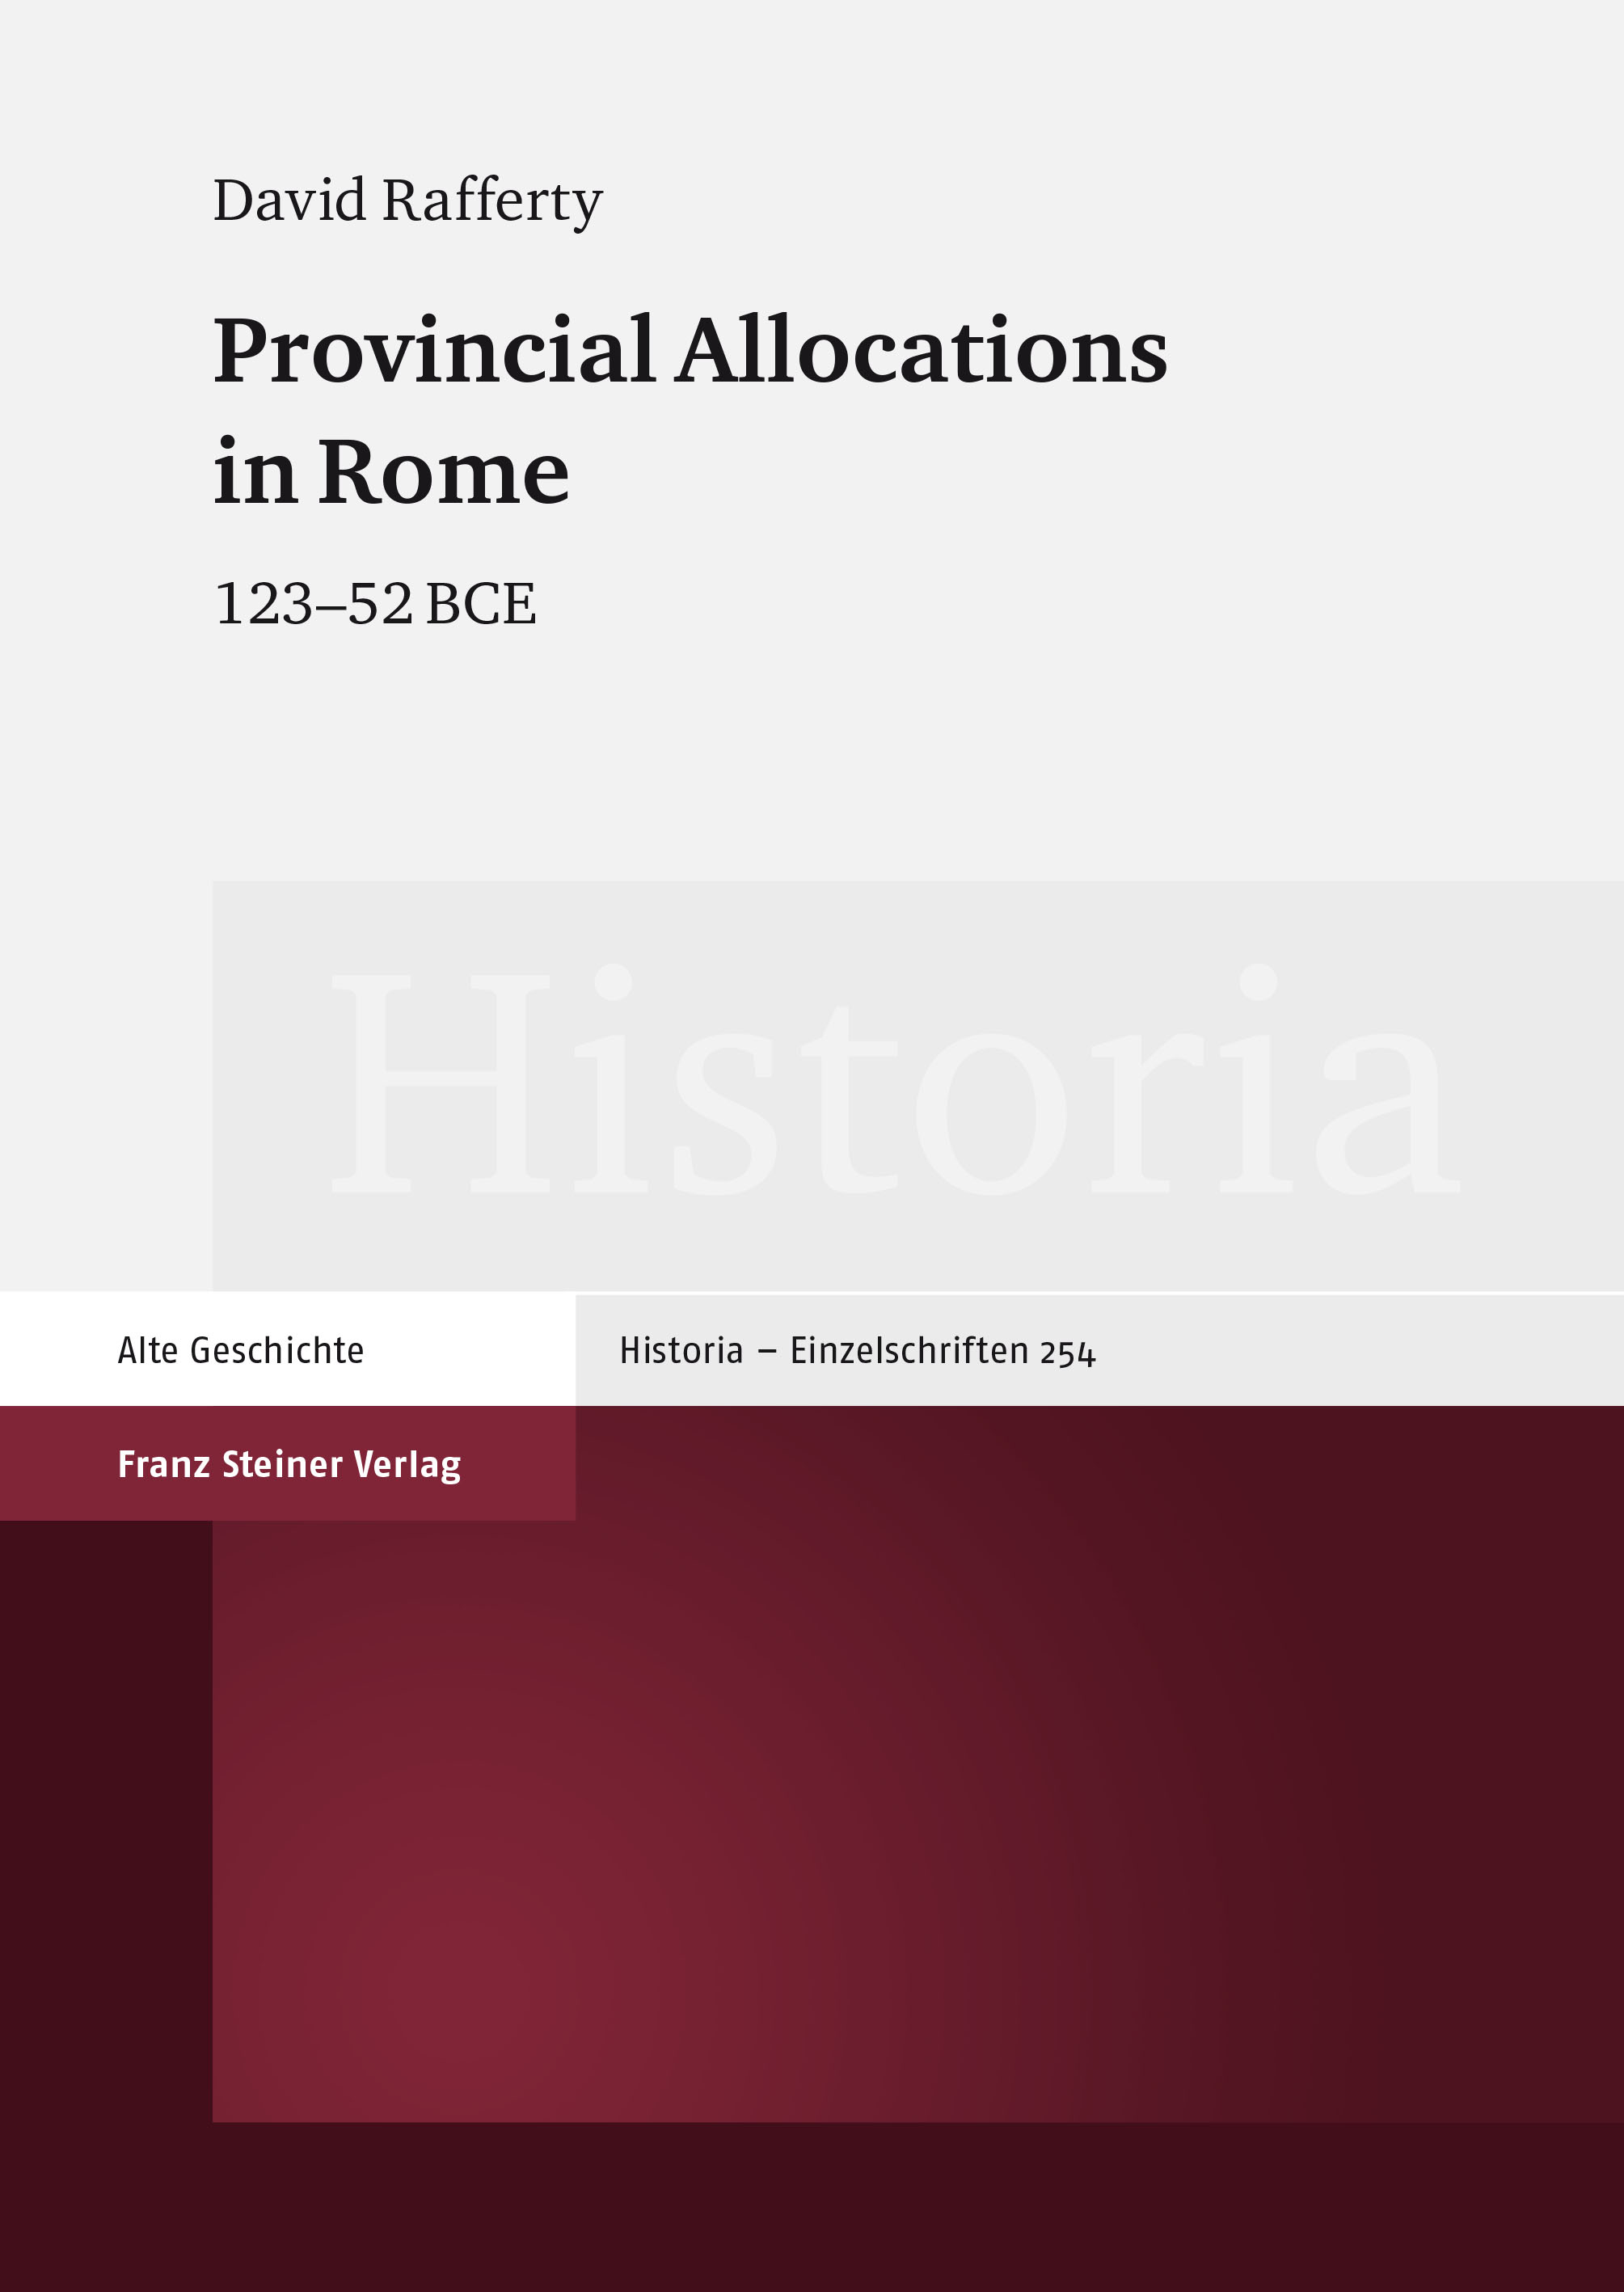 provincial_allocation_in_rome.jpg